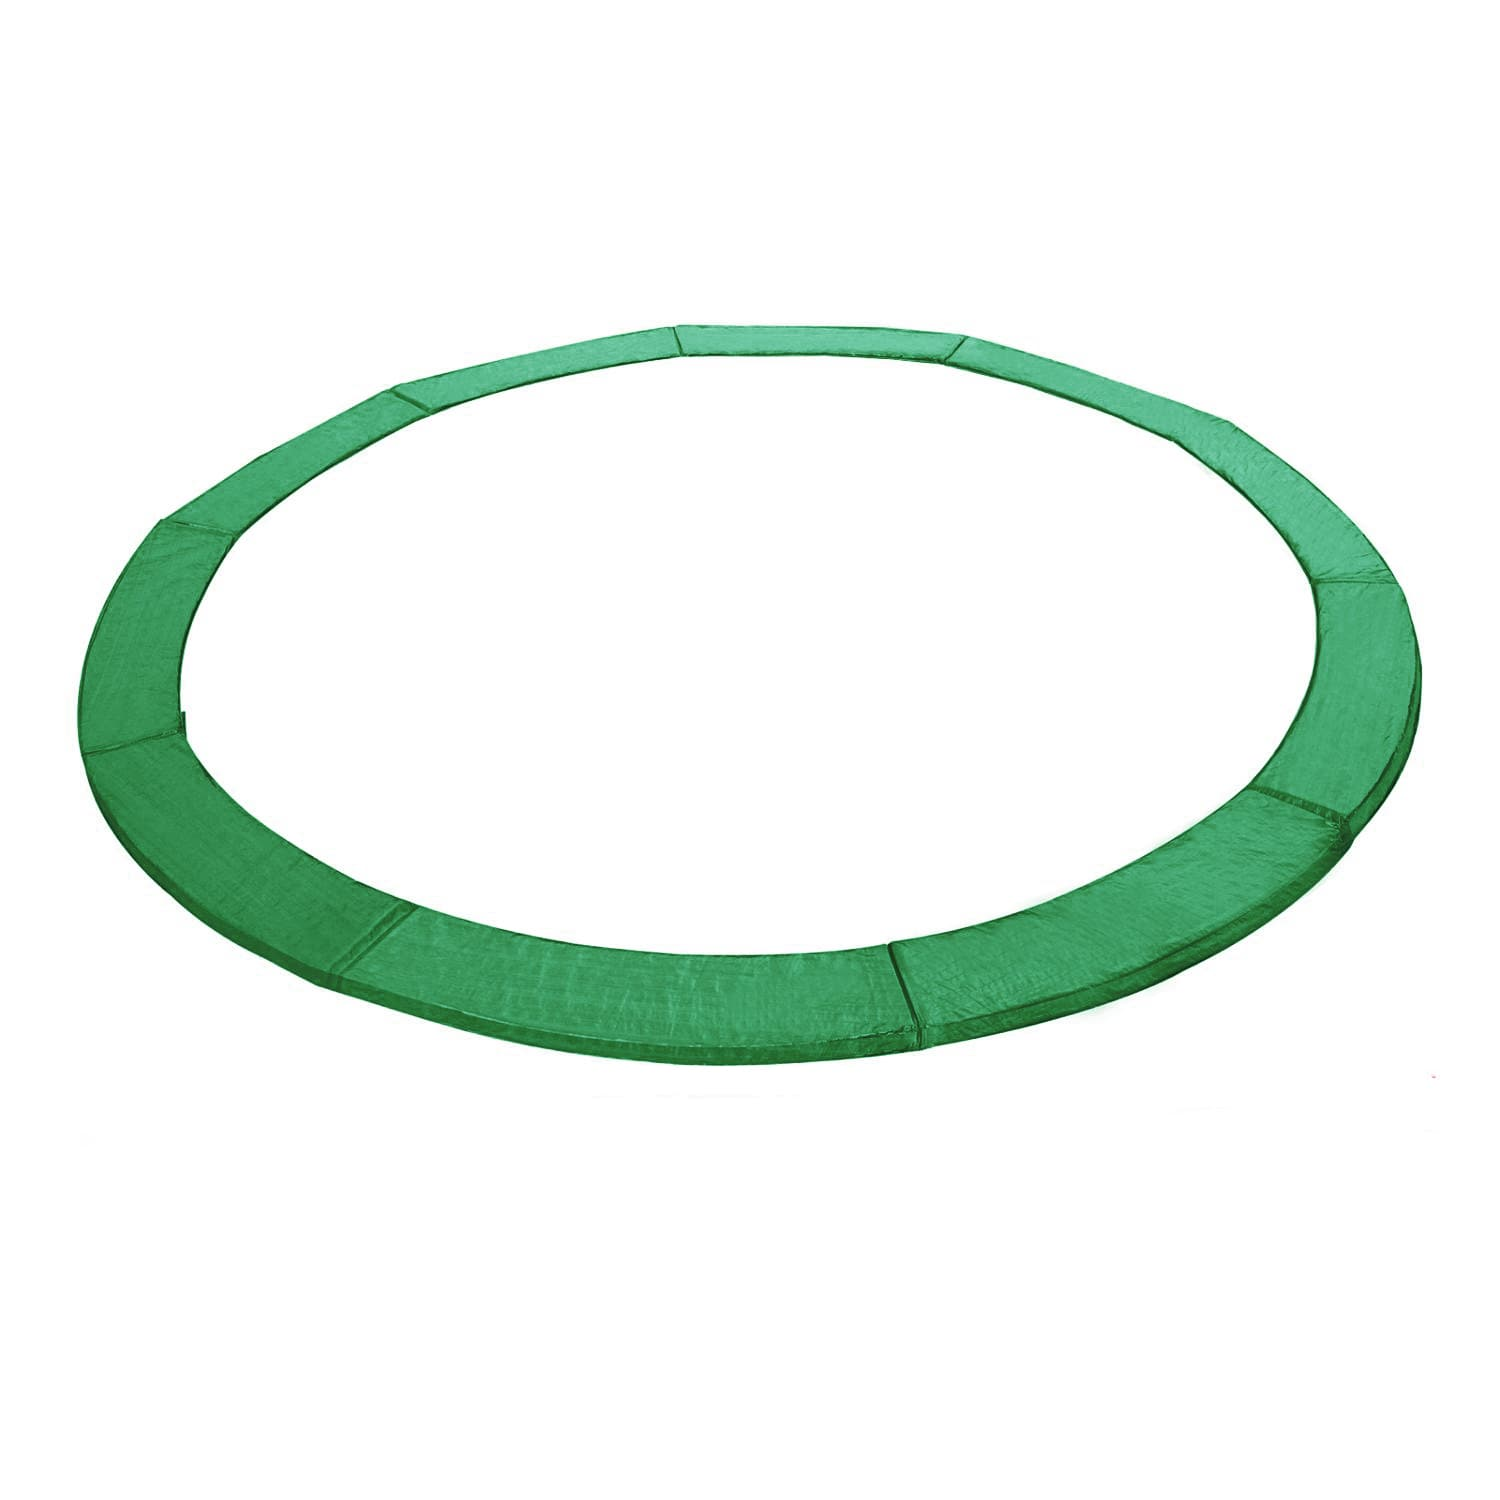 Trampoline Replacement Safety Pad Frame Spring Round Cover, 14-Foot, Green